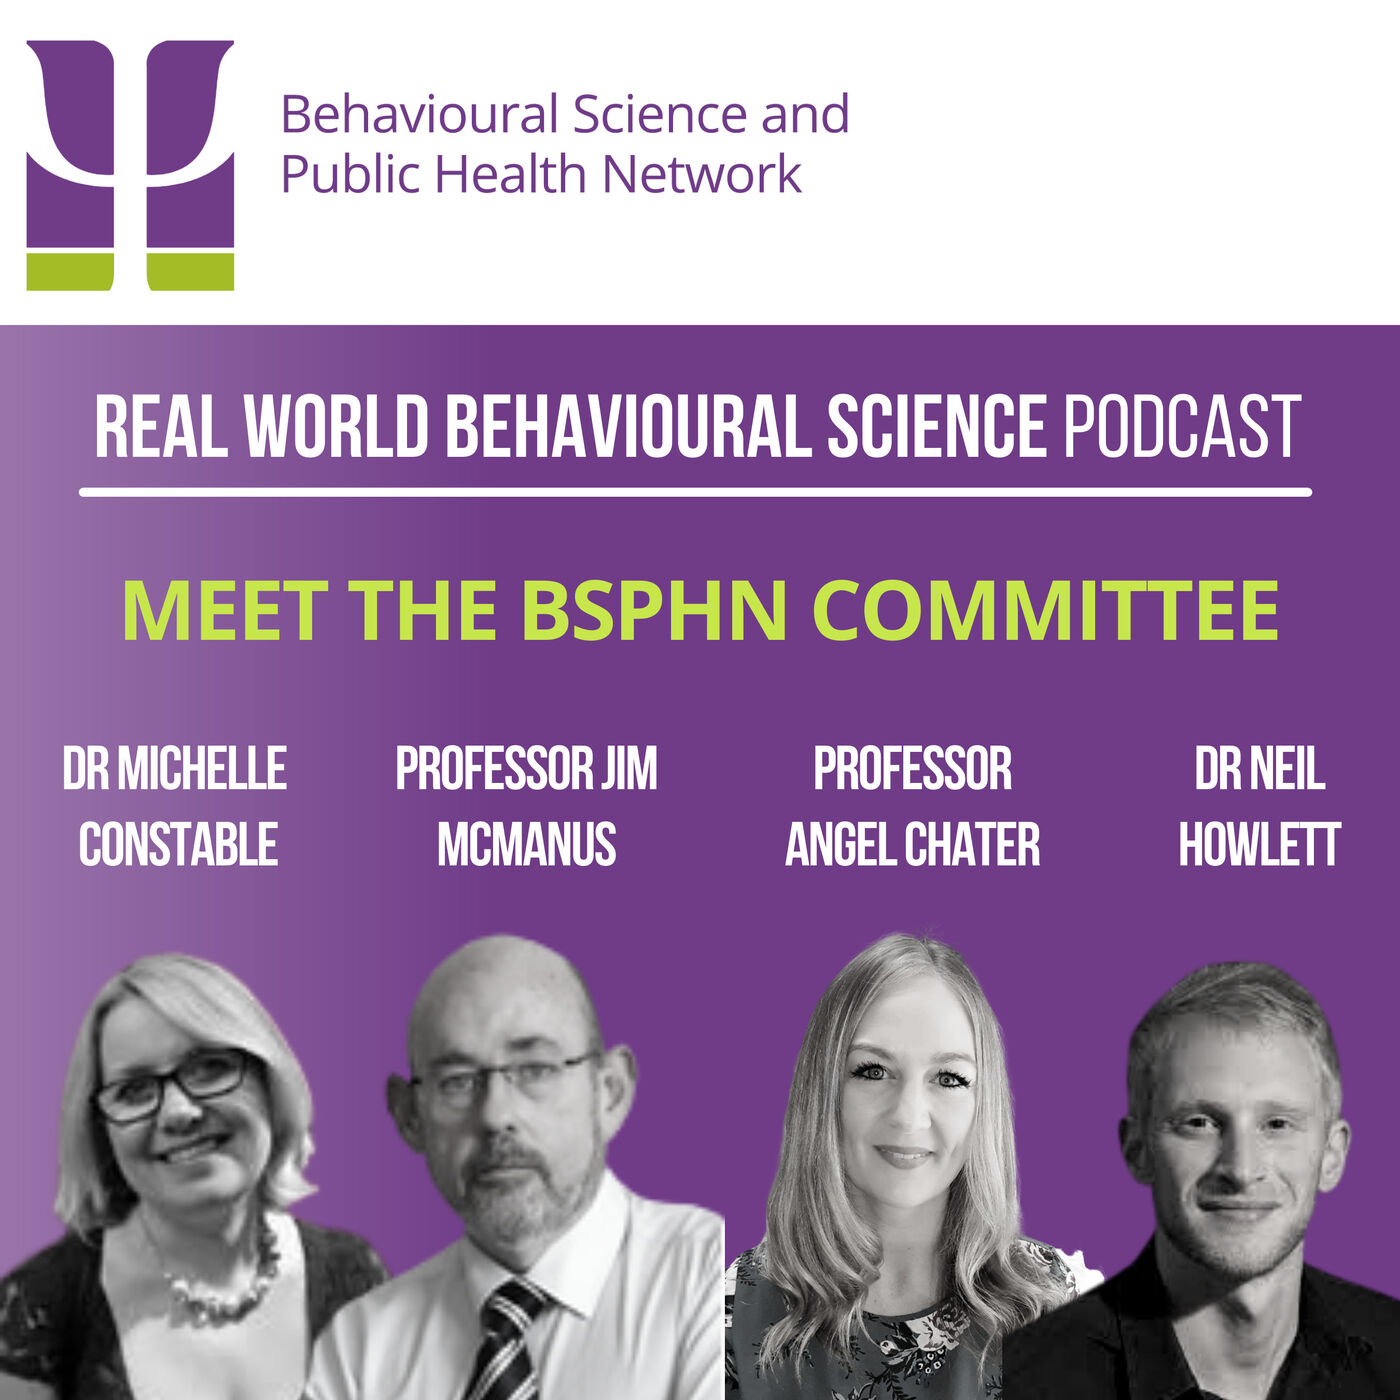 19. BSPHN Committee Leads - Dr Michelle Constable, Professor Angel Chater, Dr Neil Howlett & Professor Jim McManus